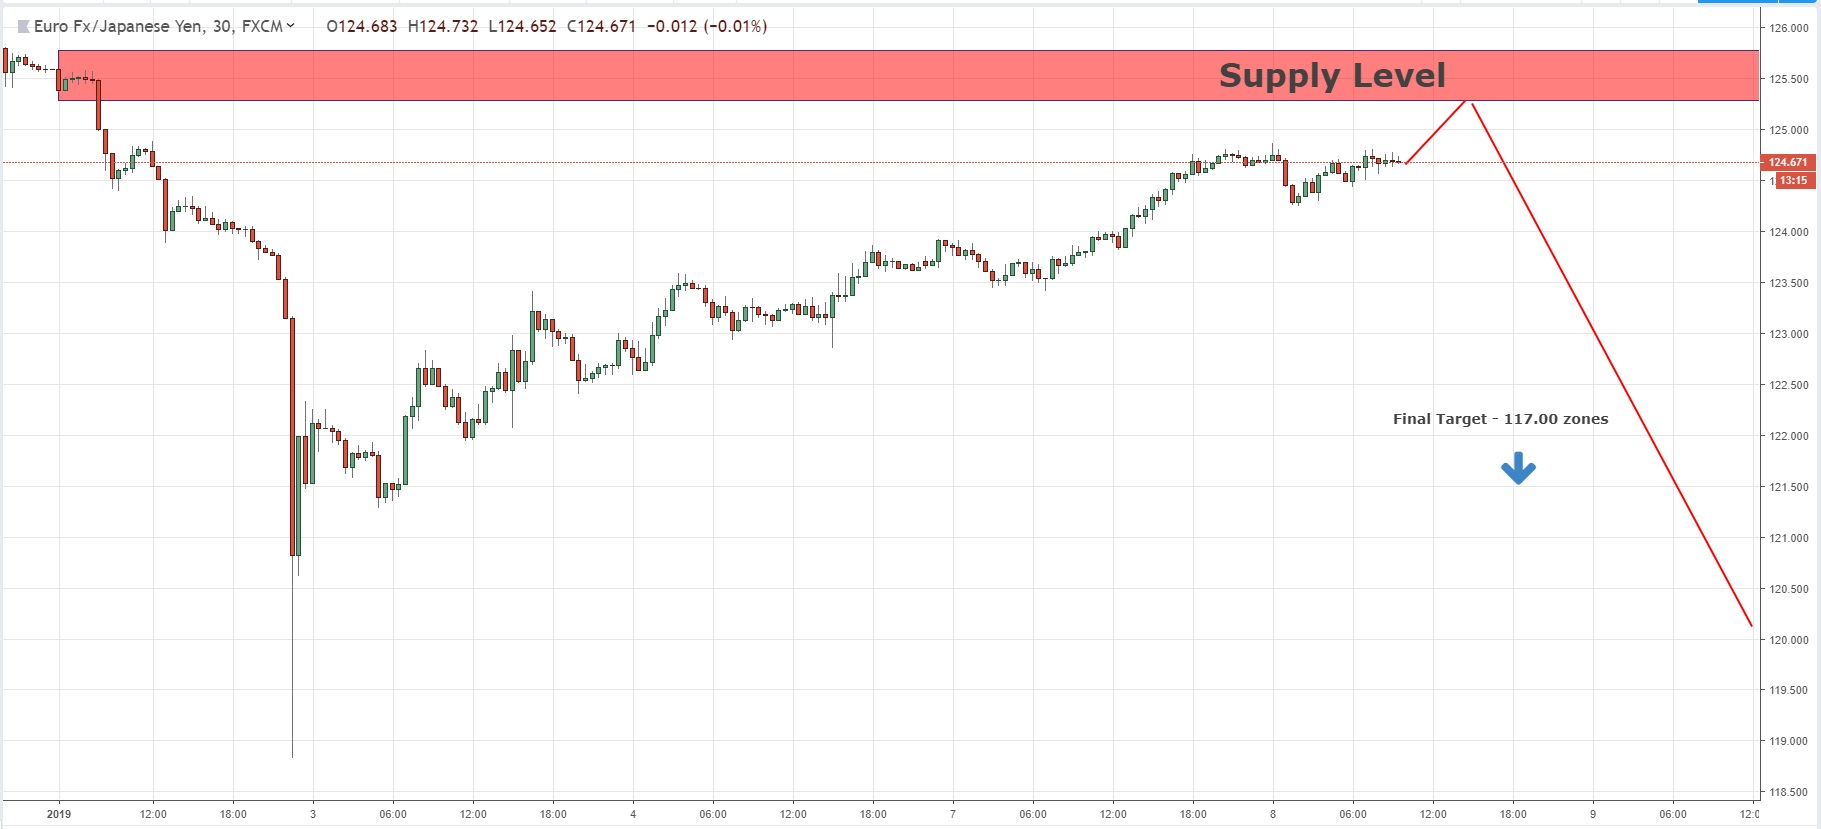 Continuation Supply Level For Long Term Sell Position On EURJPY 08/01/2019